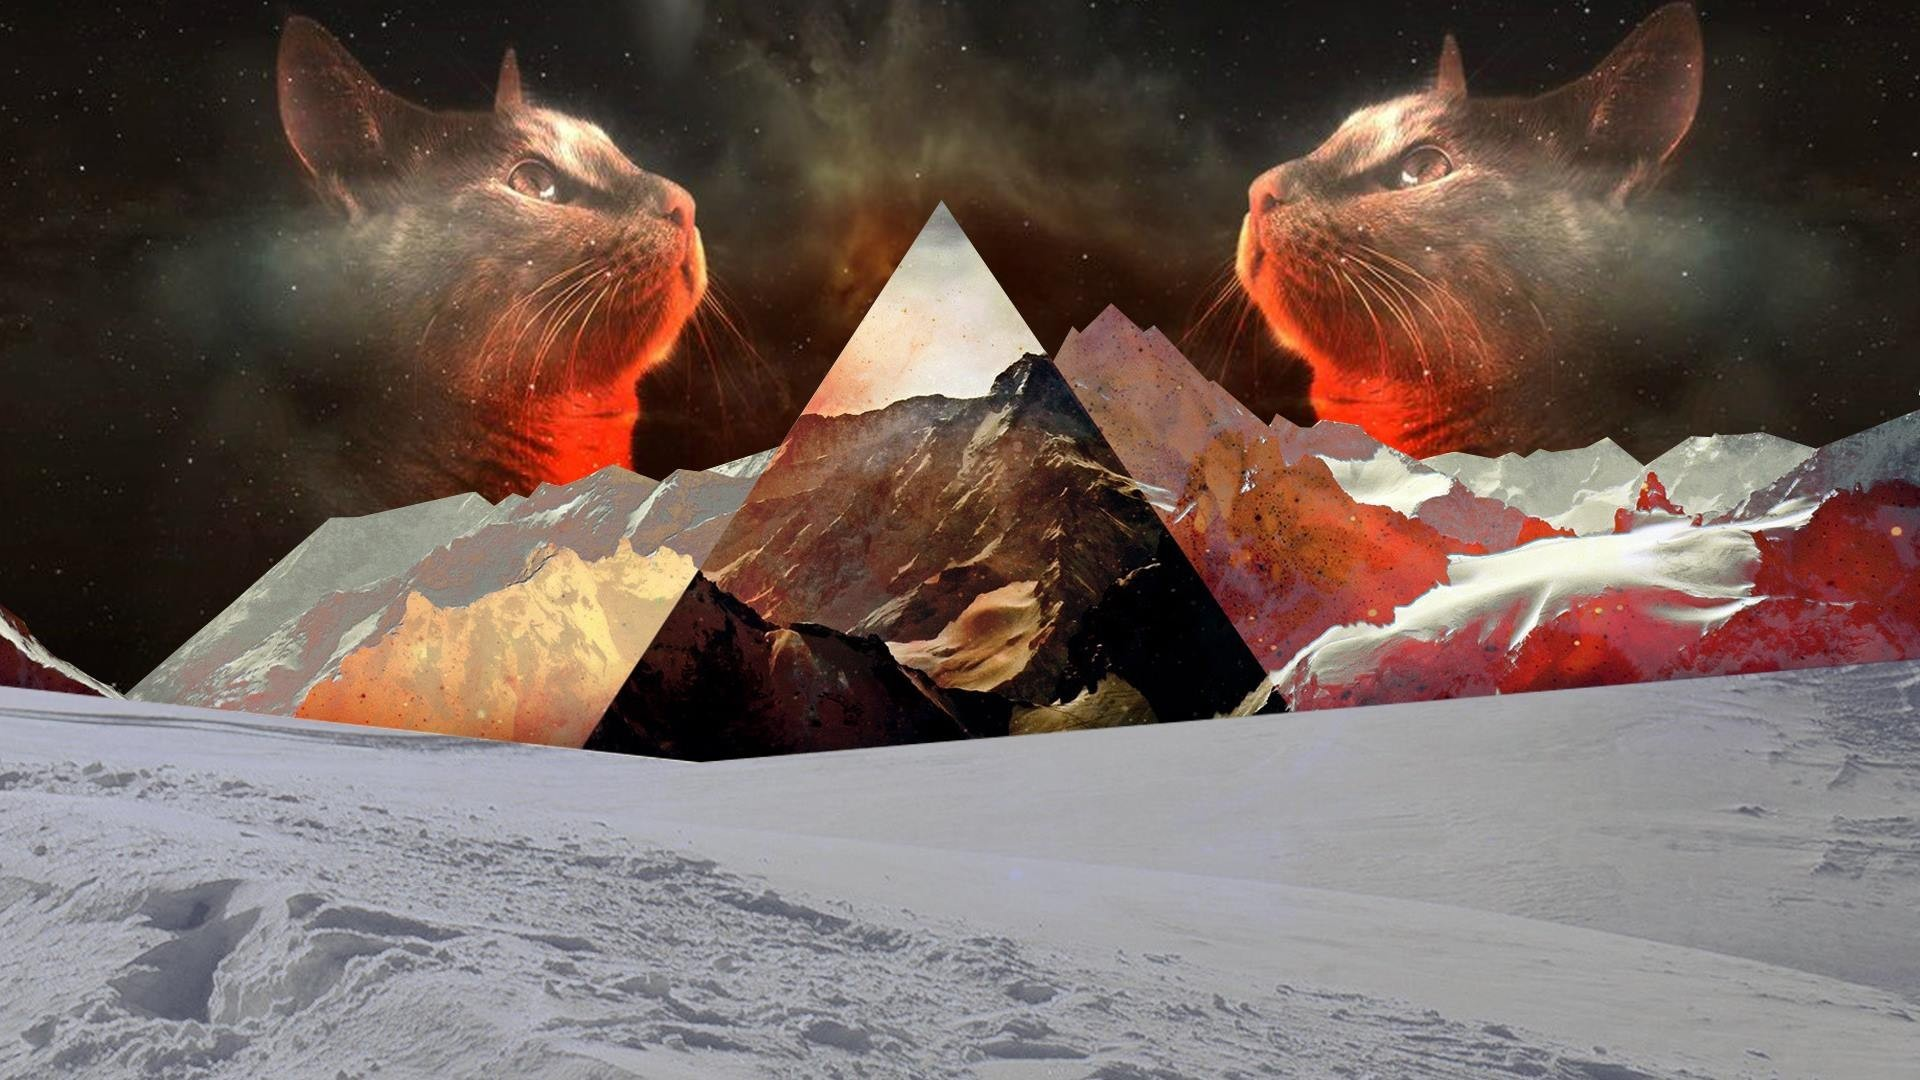 General cat nature snow polyscape mountains triangle digital art